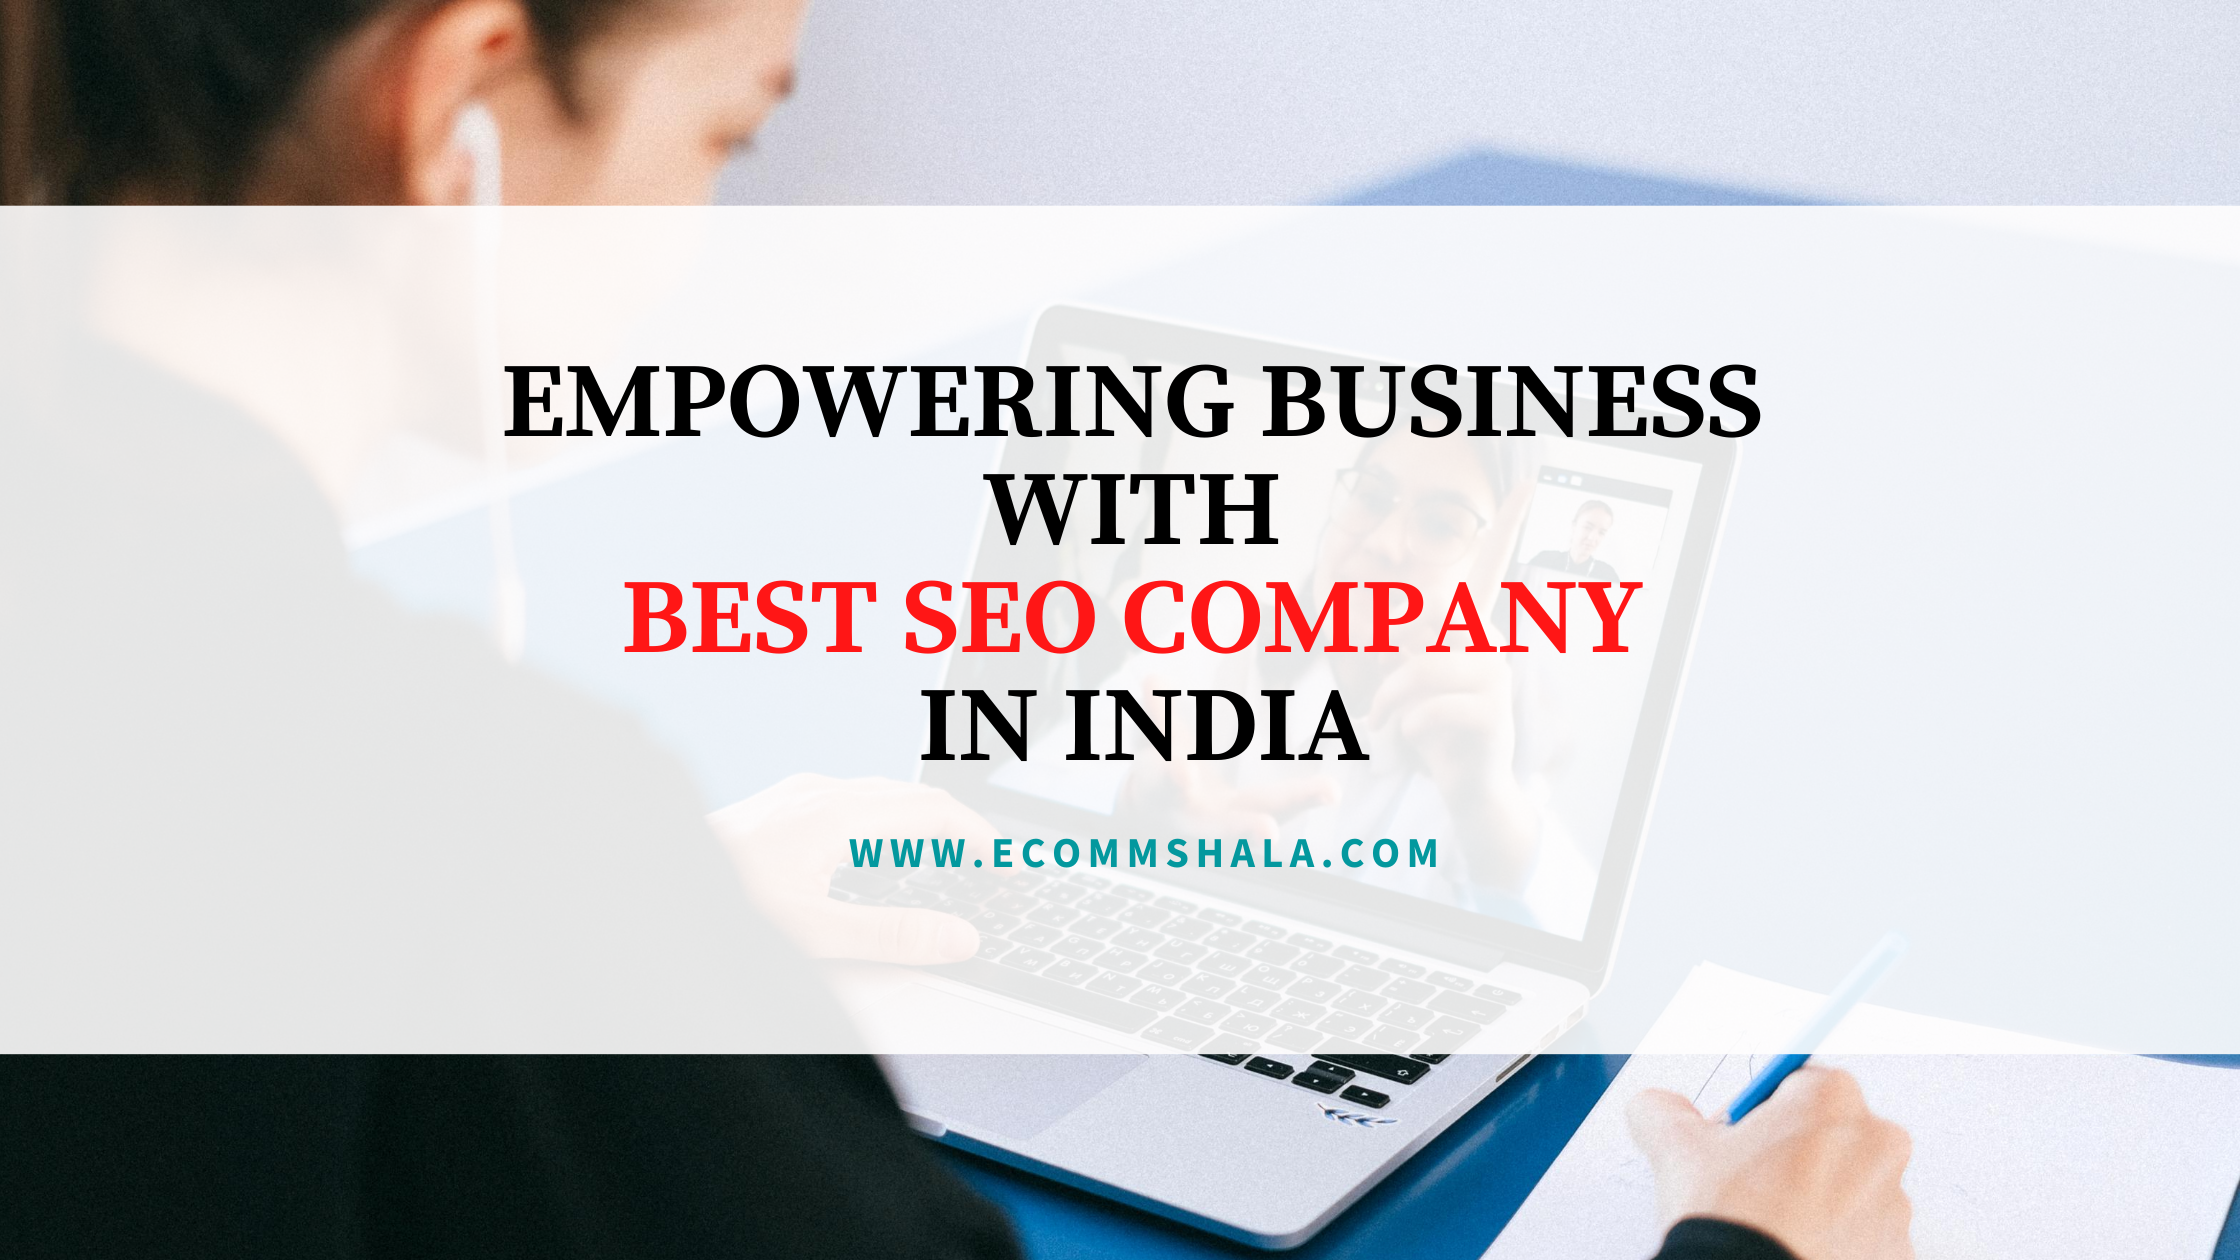 Empowering Business With Best SEO Company In India